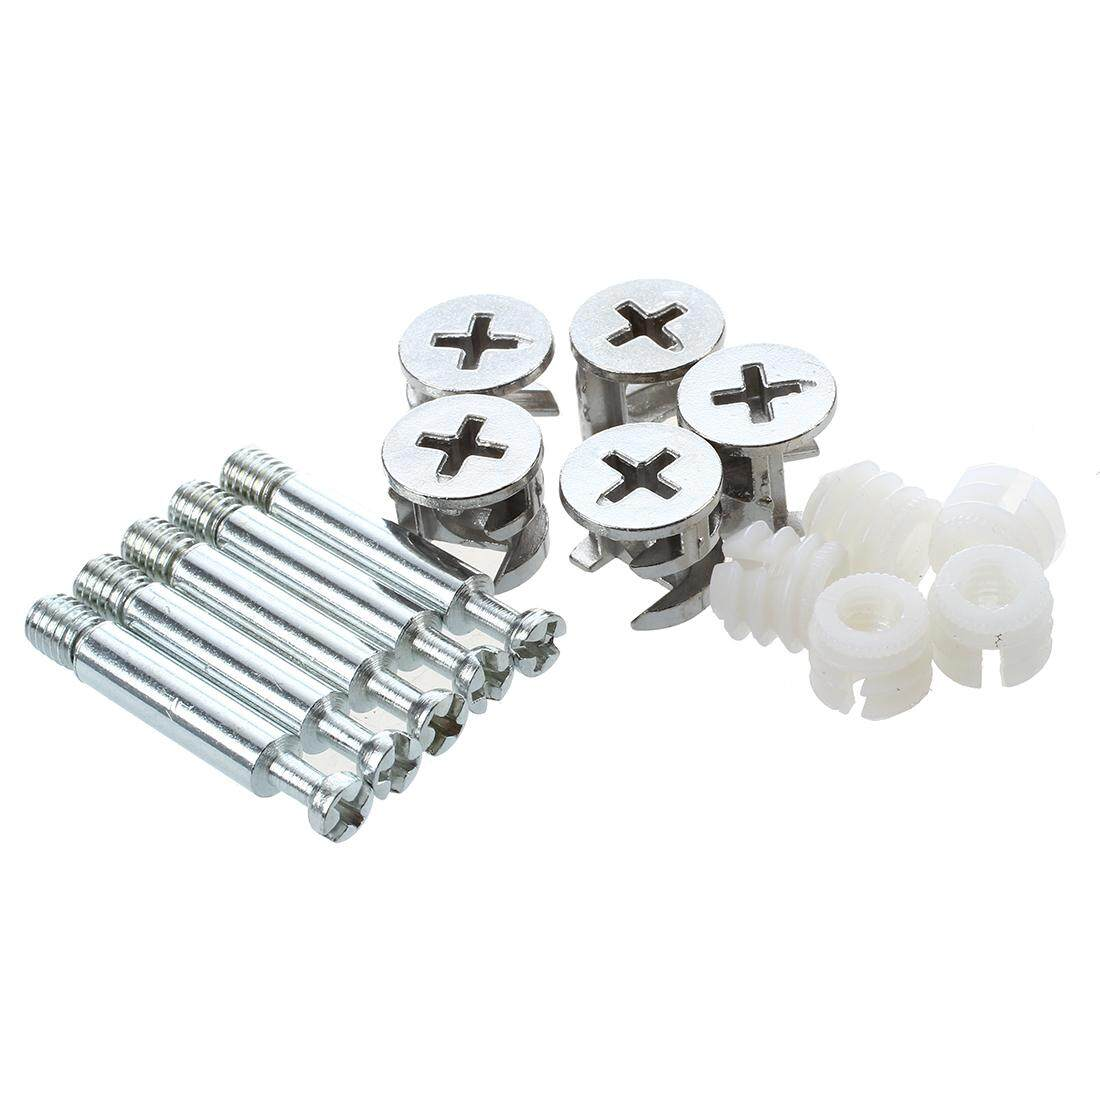 Furniture Cam Fitting with Dowel and Pre-Inserted Nut (Set of 5) - intl